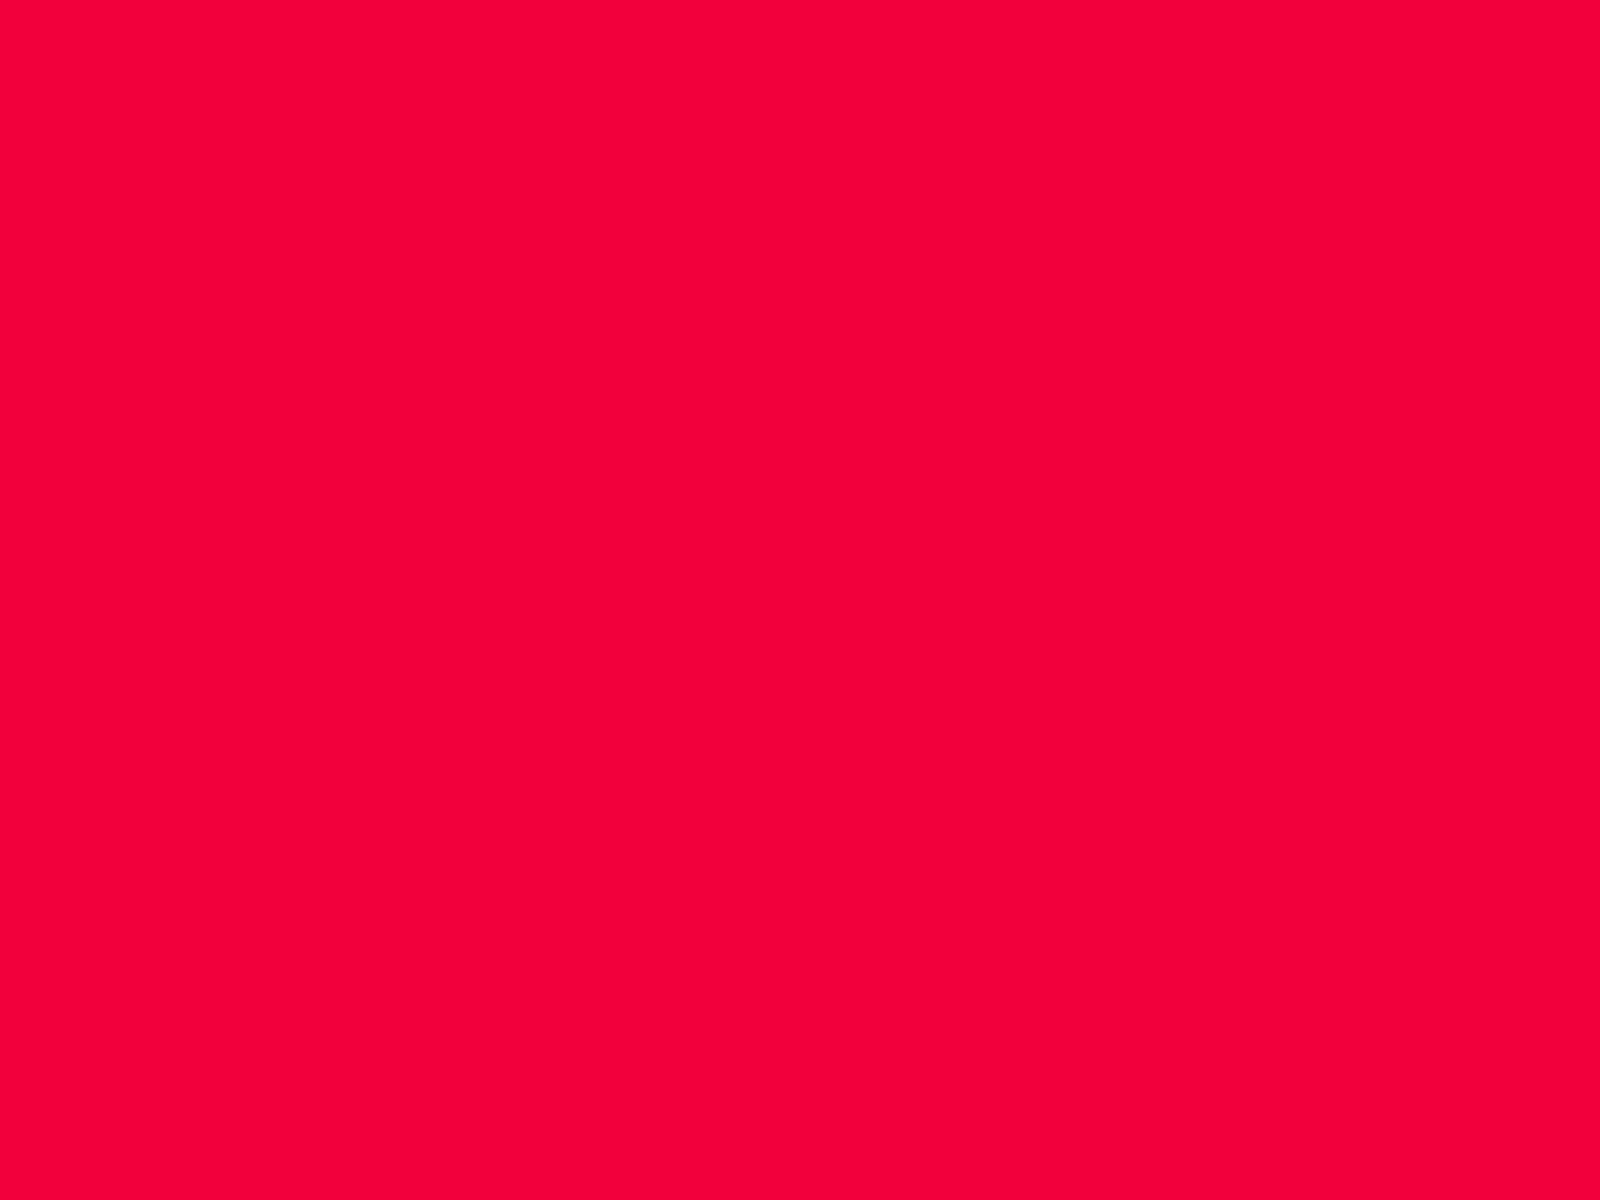 1600x1200 Red Munsell Solid Color Background